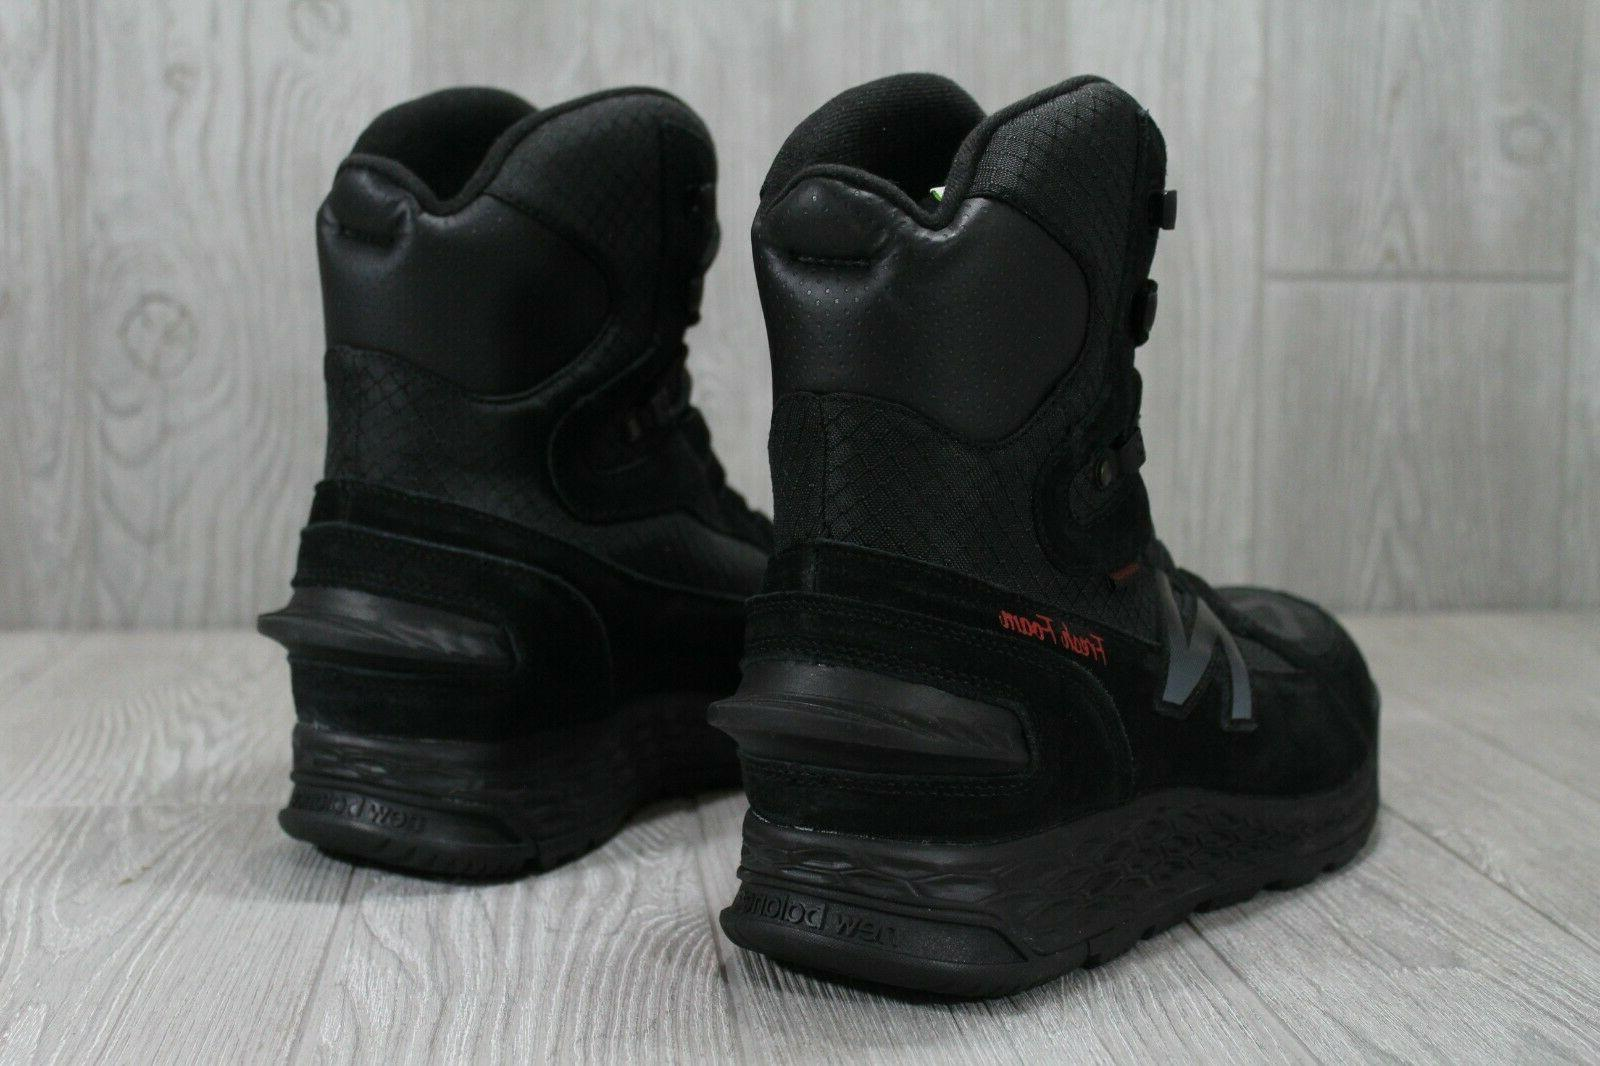 38 New Fresh Foam Boots Men's Size 9.5 13 D